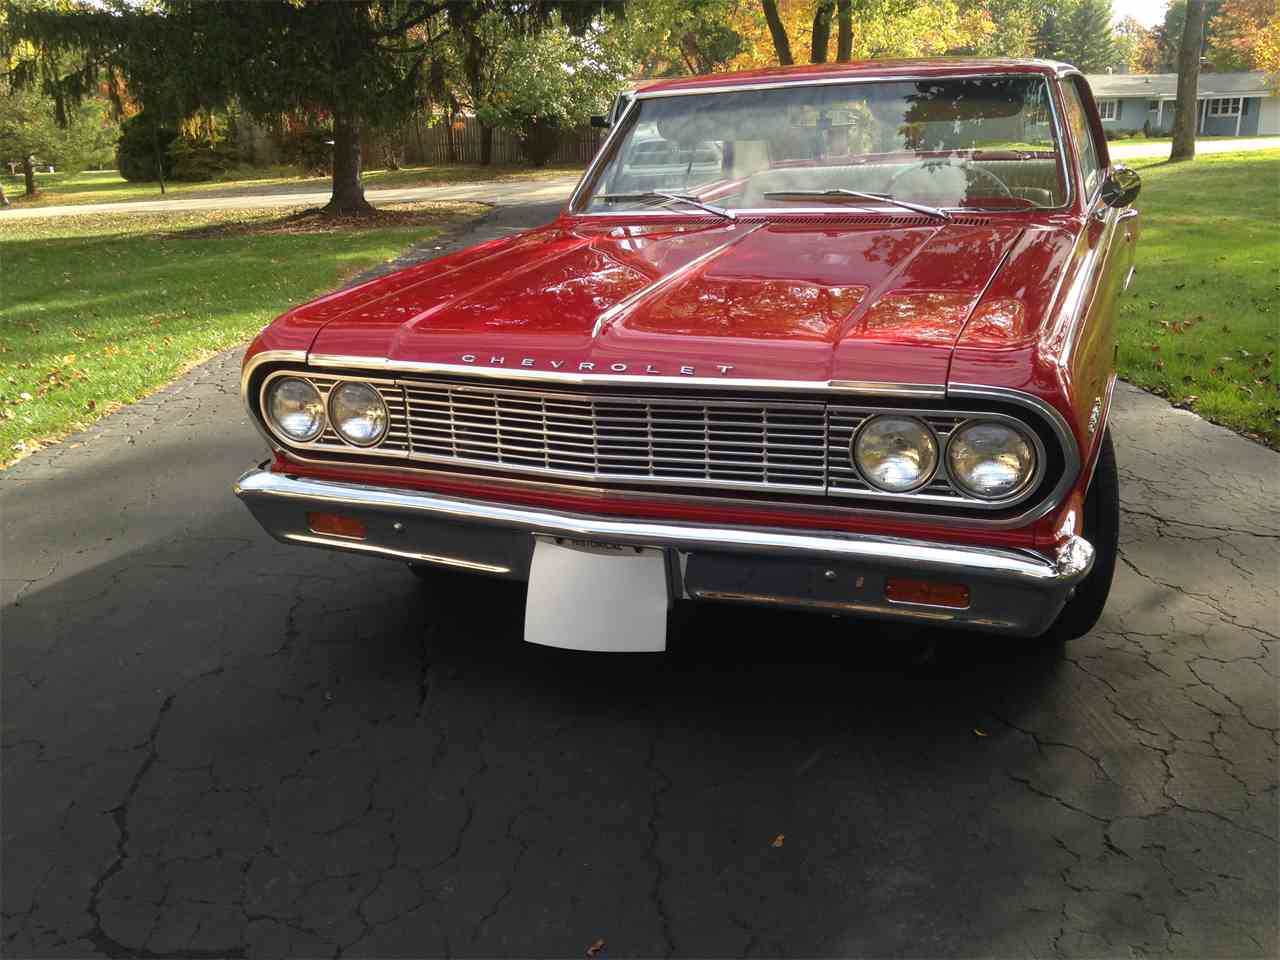 1964 chevrolet chevelle malibu ss for sale classiccars. Black Bedroom Furniture Sets. Home Design Ideas